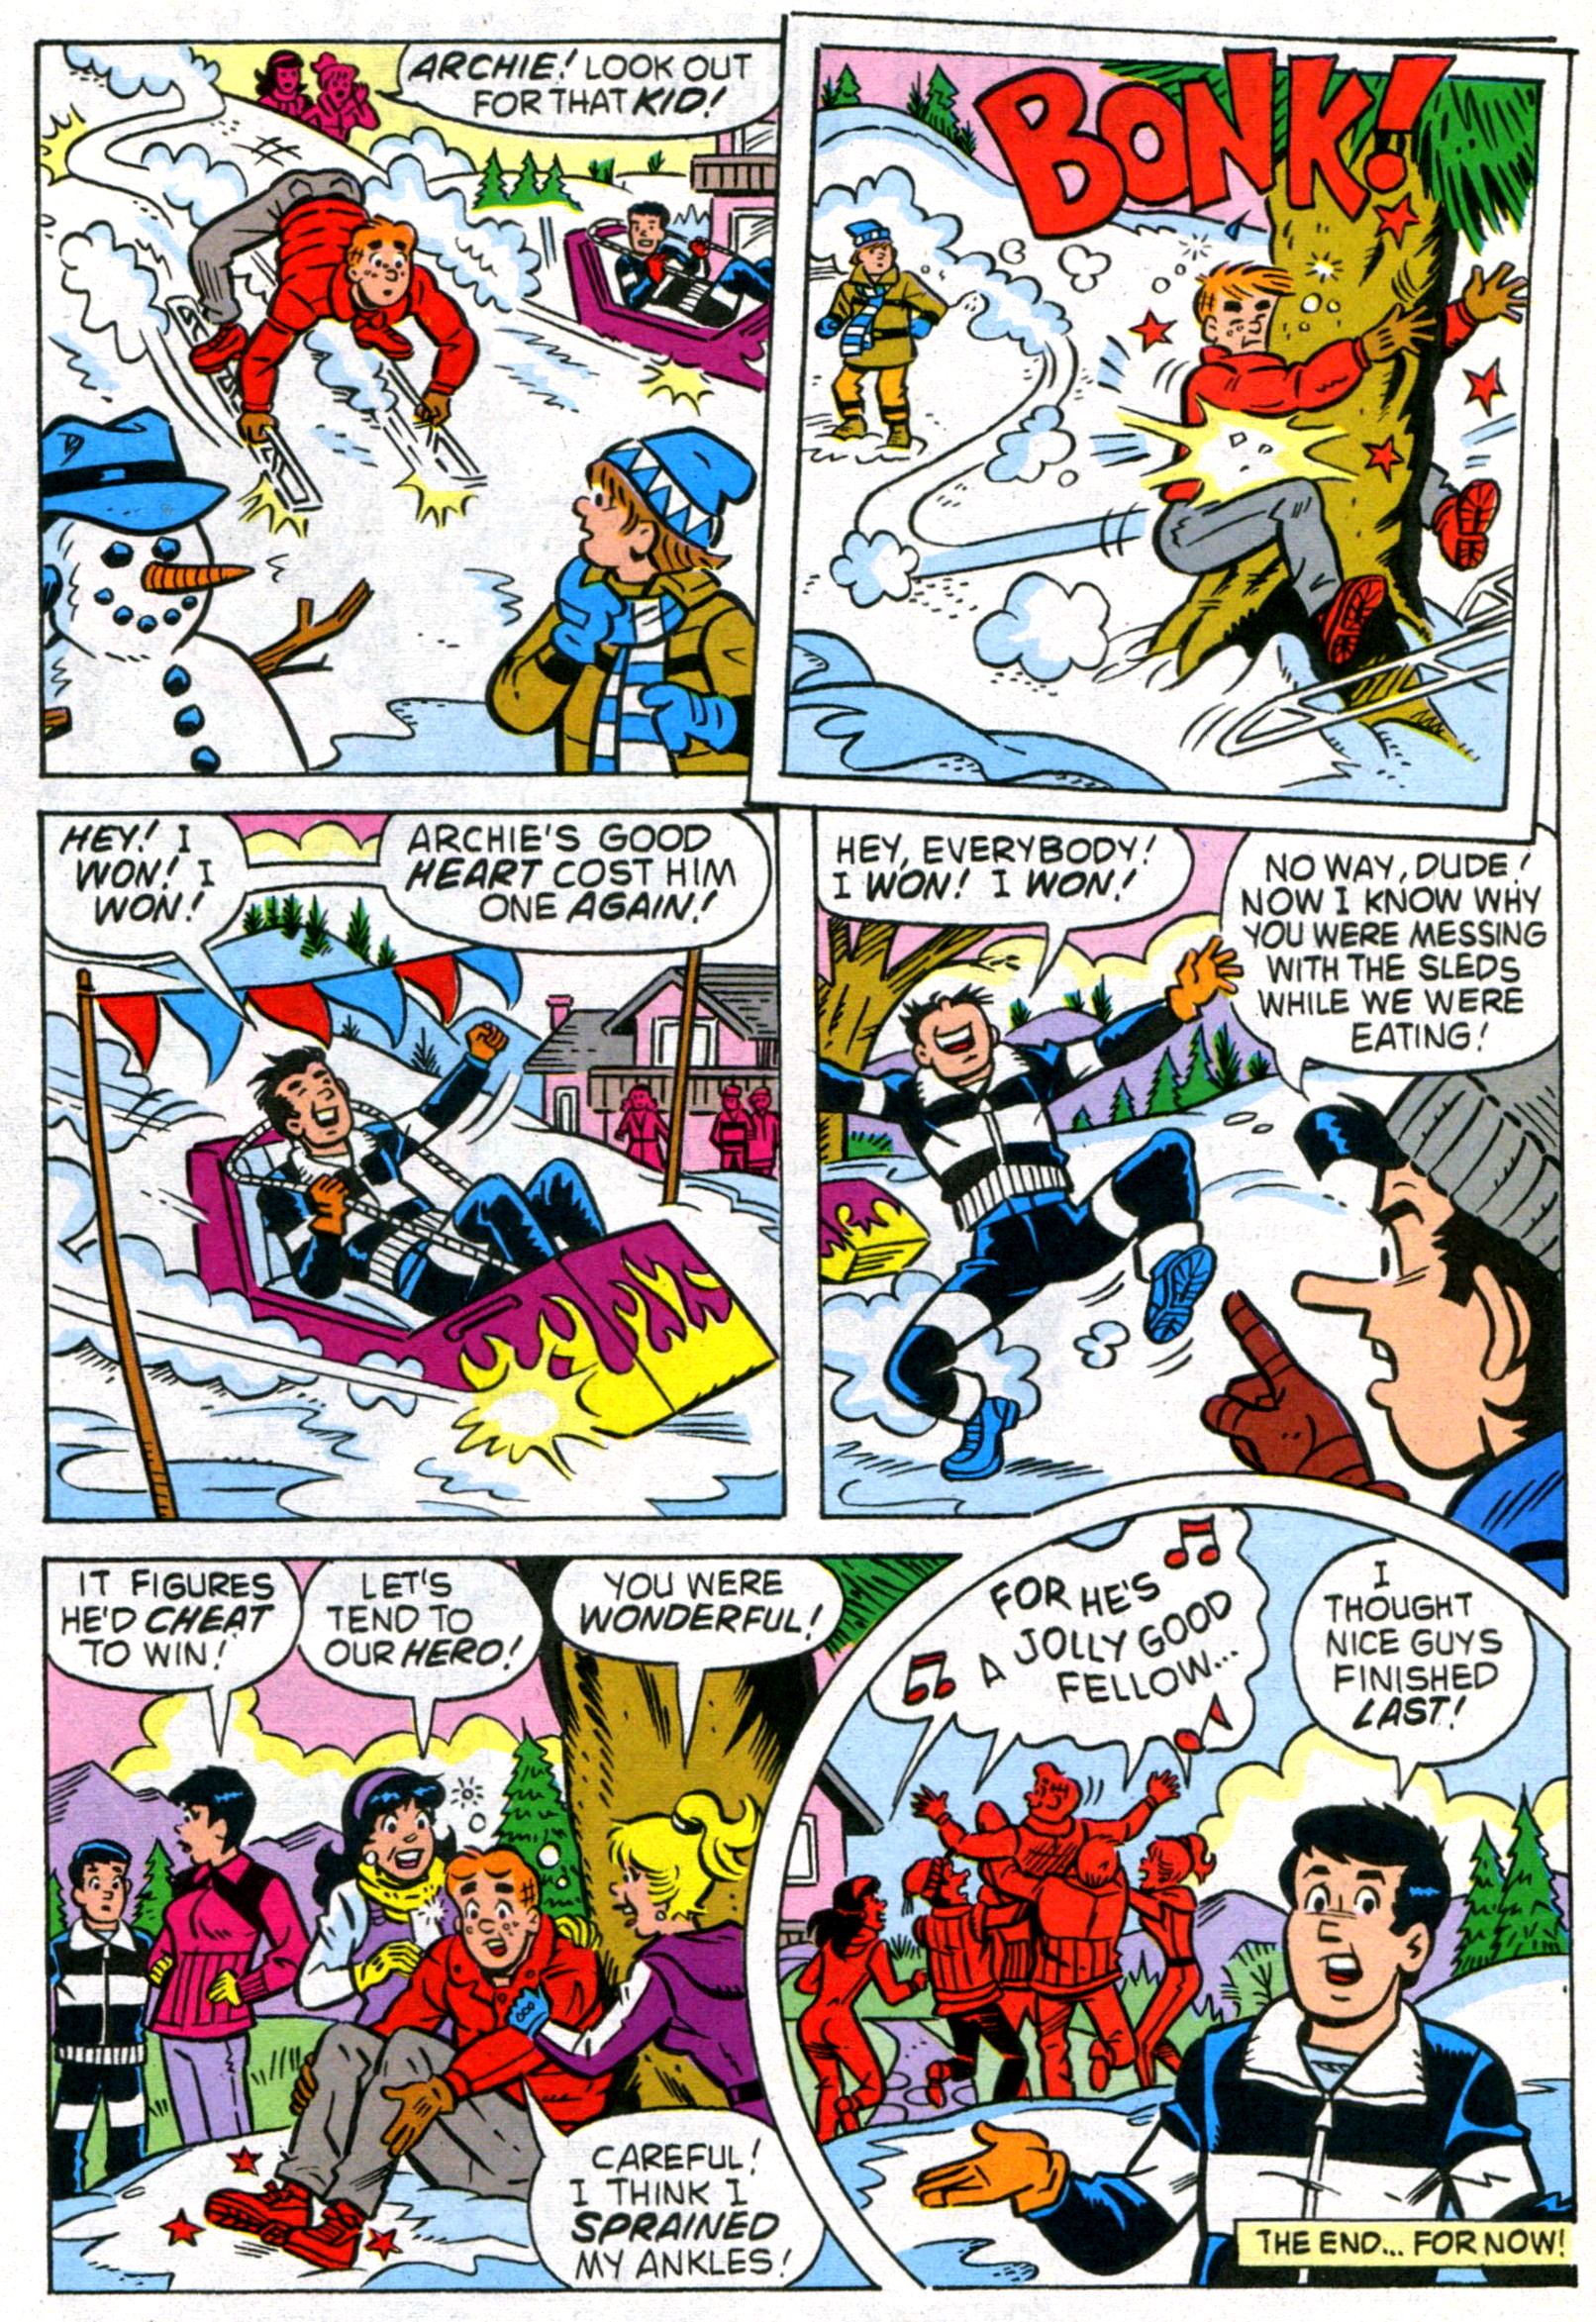 Read online World of Archie comic -  Issue #8 - 17